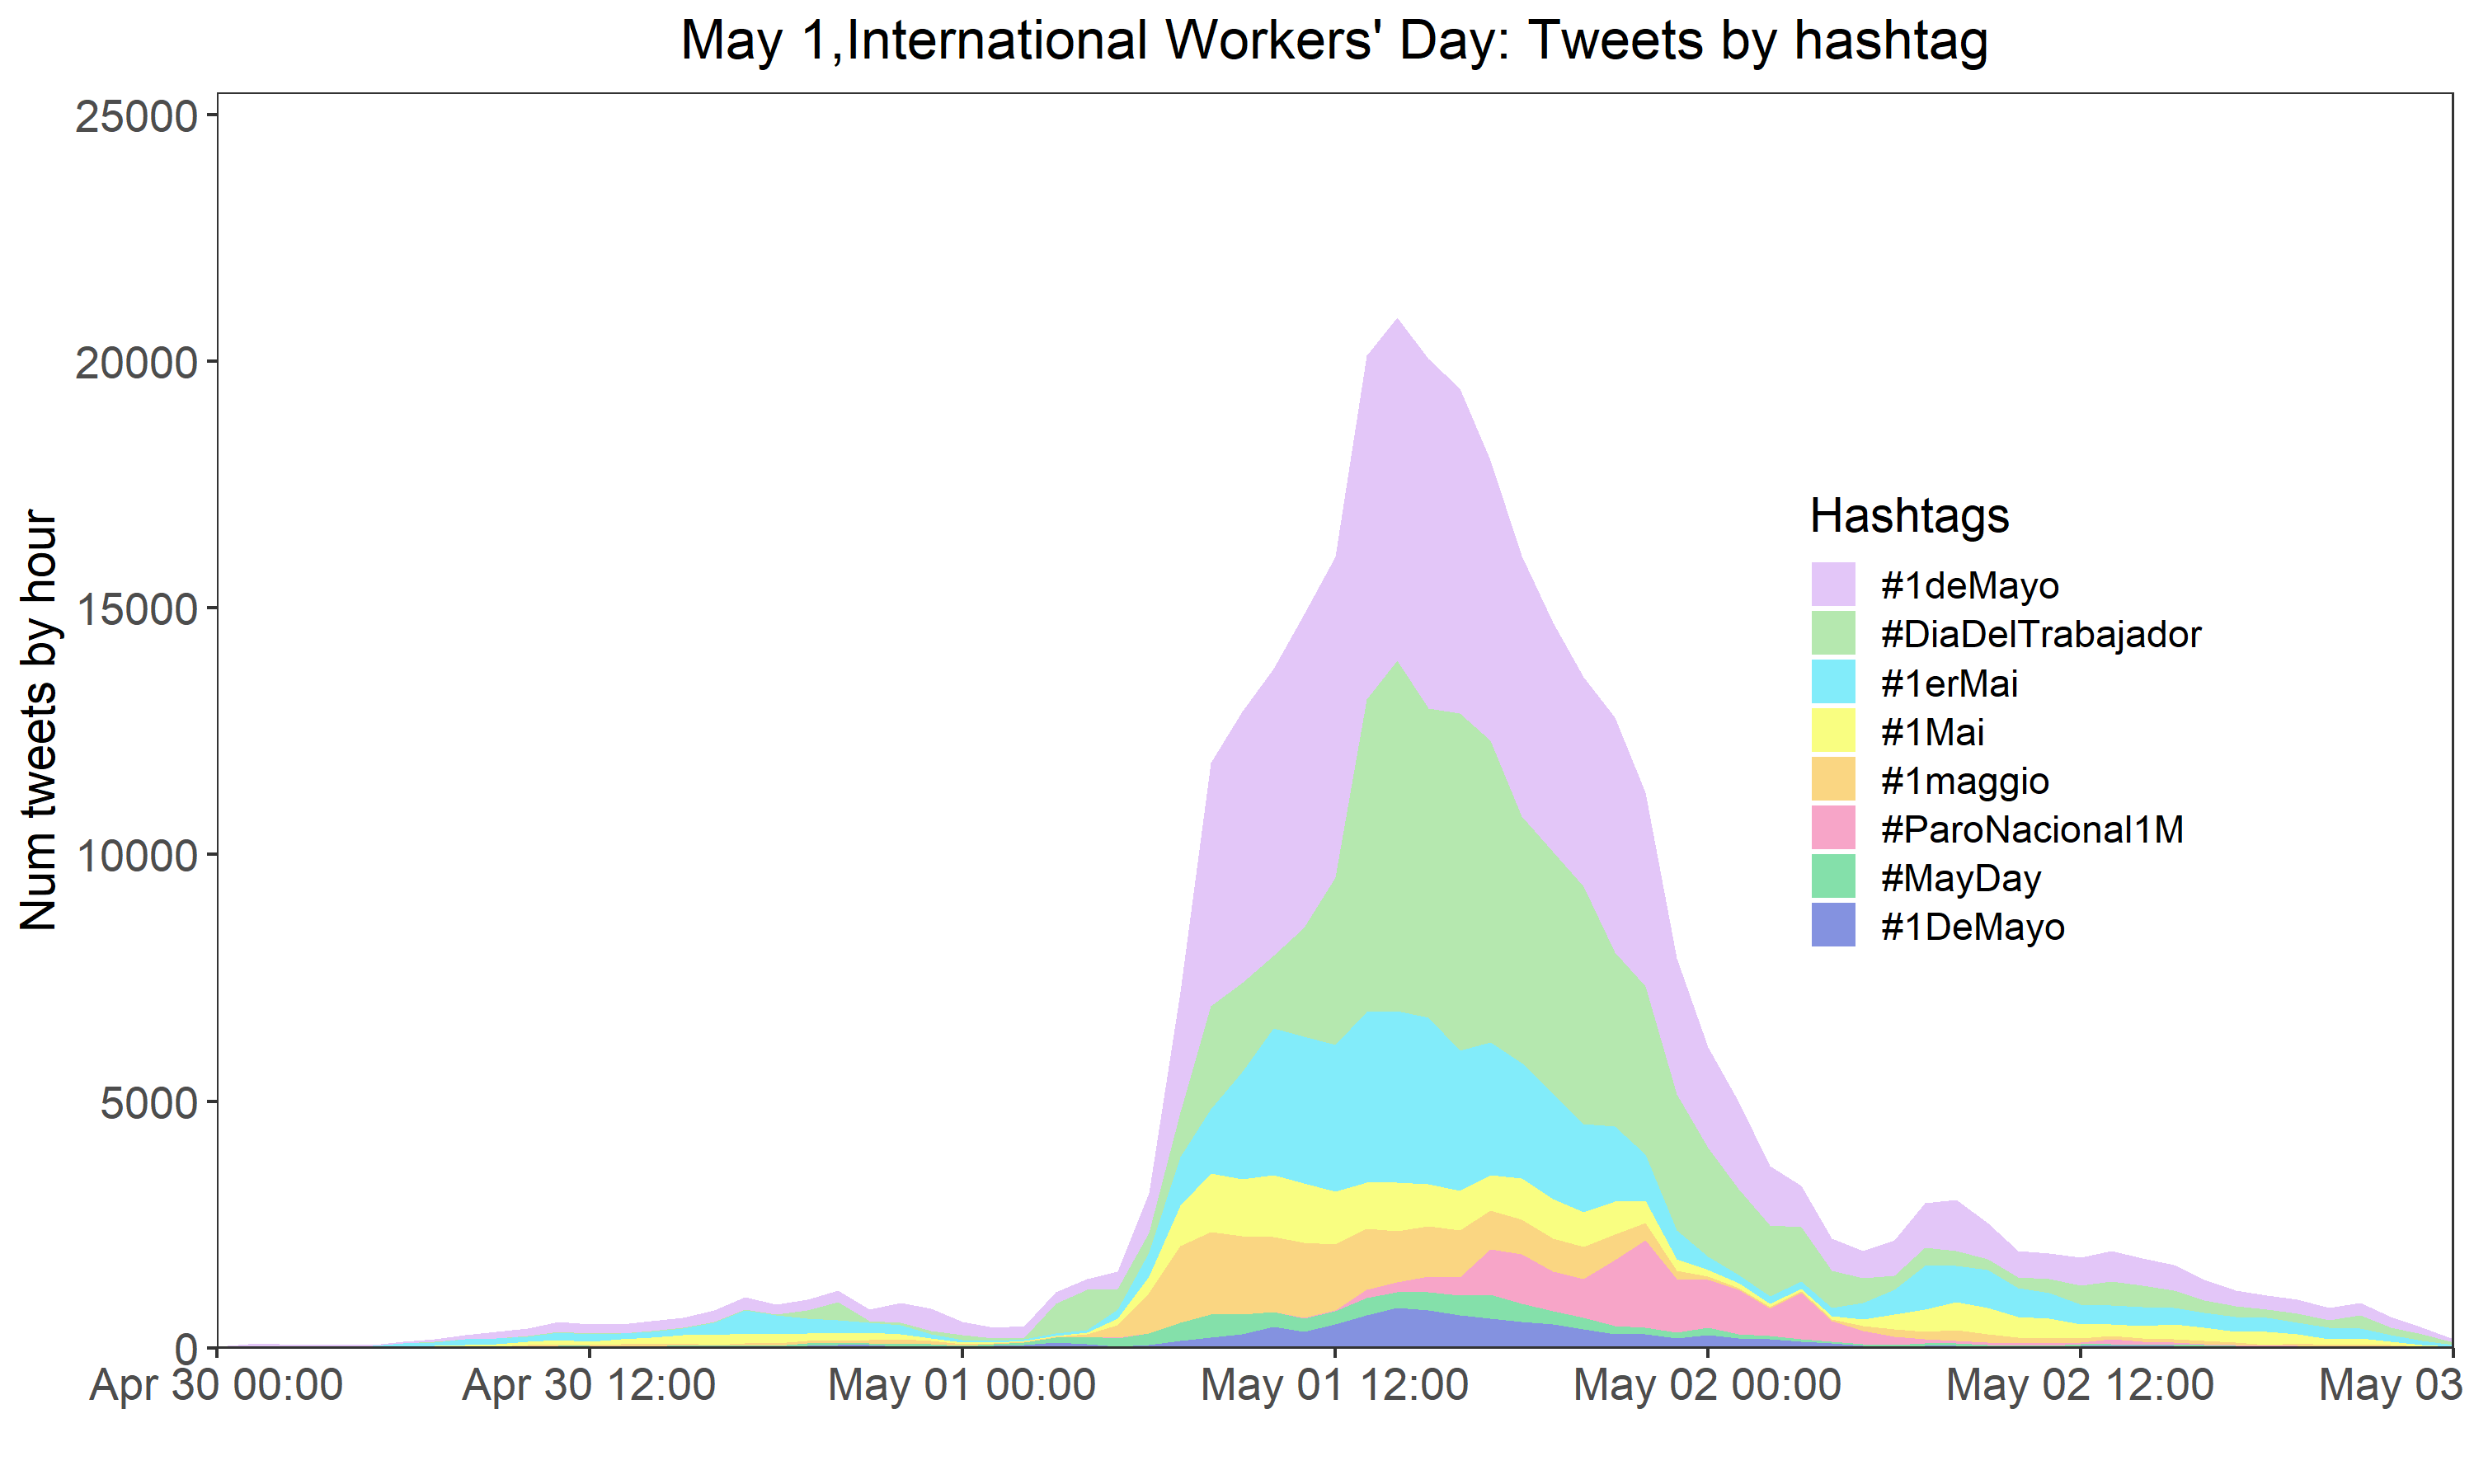 FIG. 8 PRESENCE OF HASHTAGS IN TWEETS